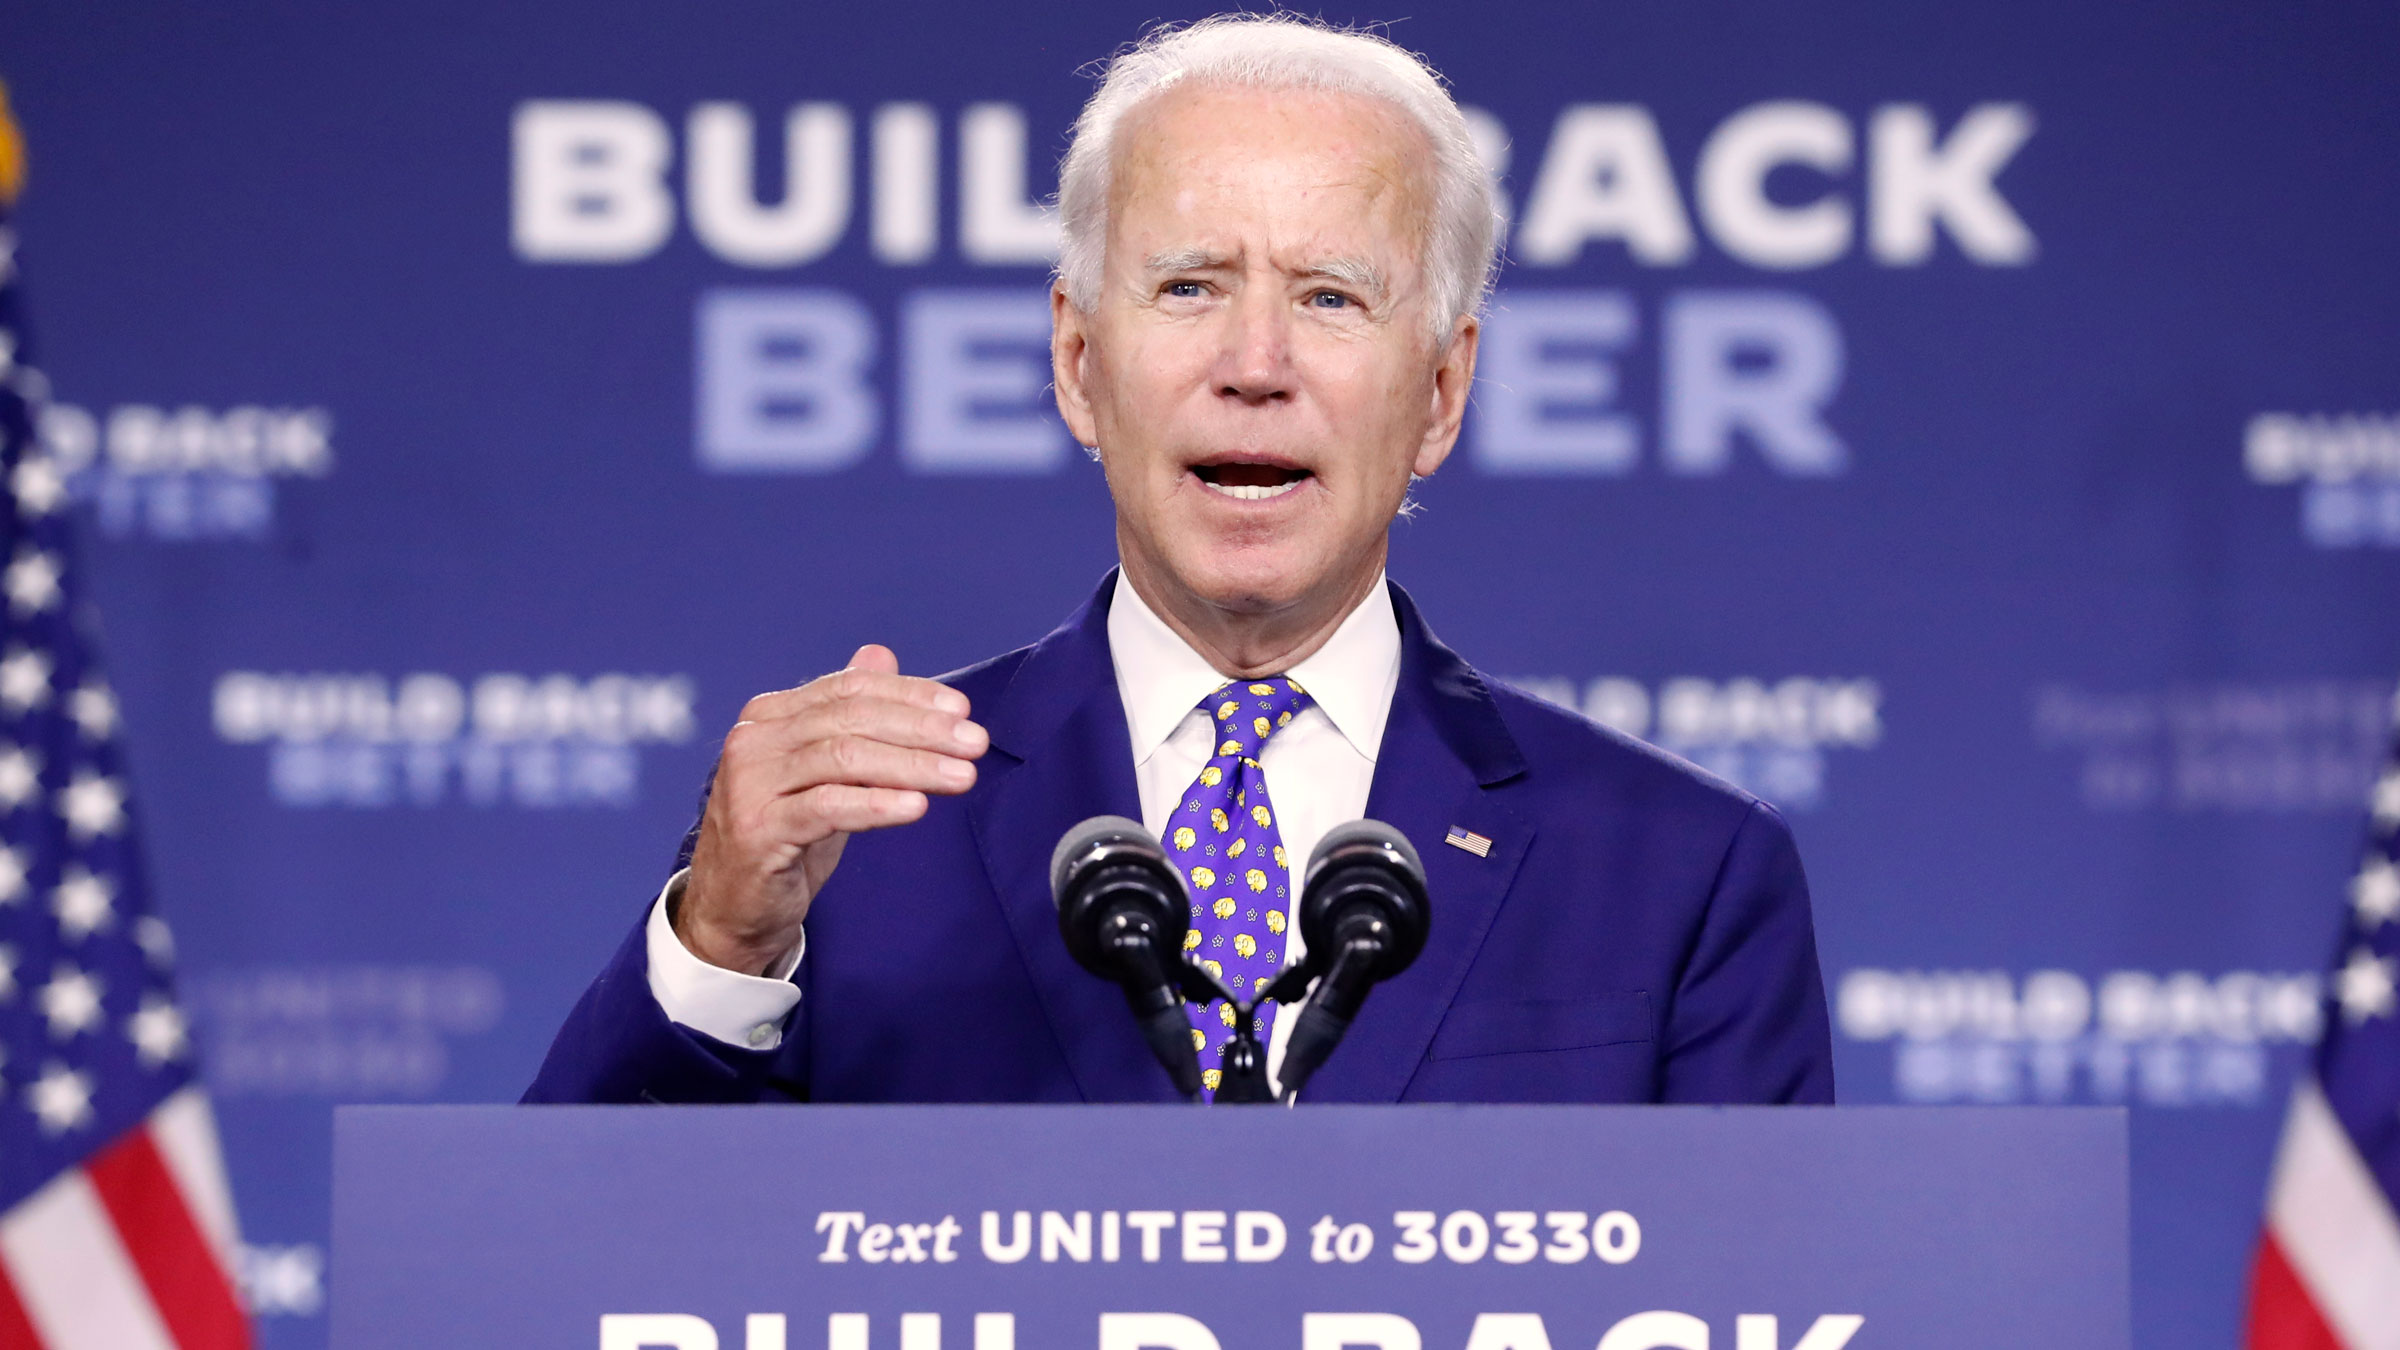 Joe Biden speaks at a campaign event in Wilmington, Delaware, on Tuesday.